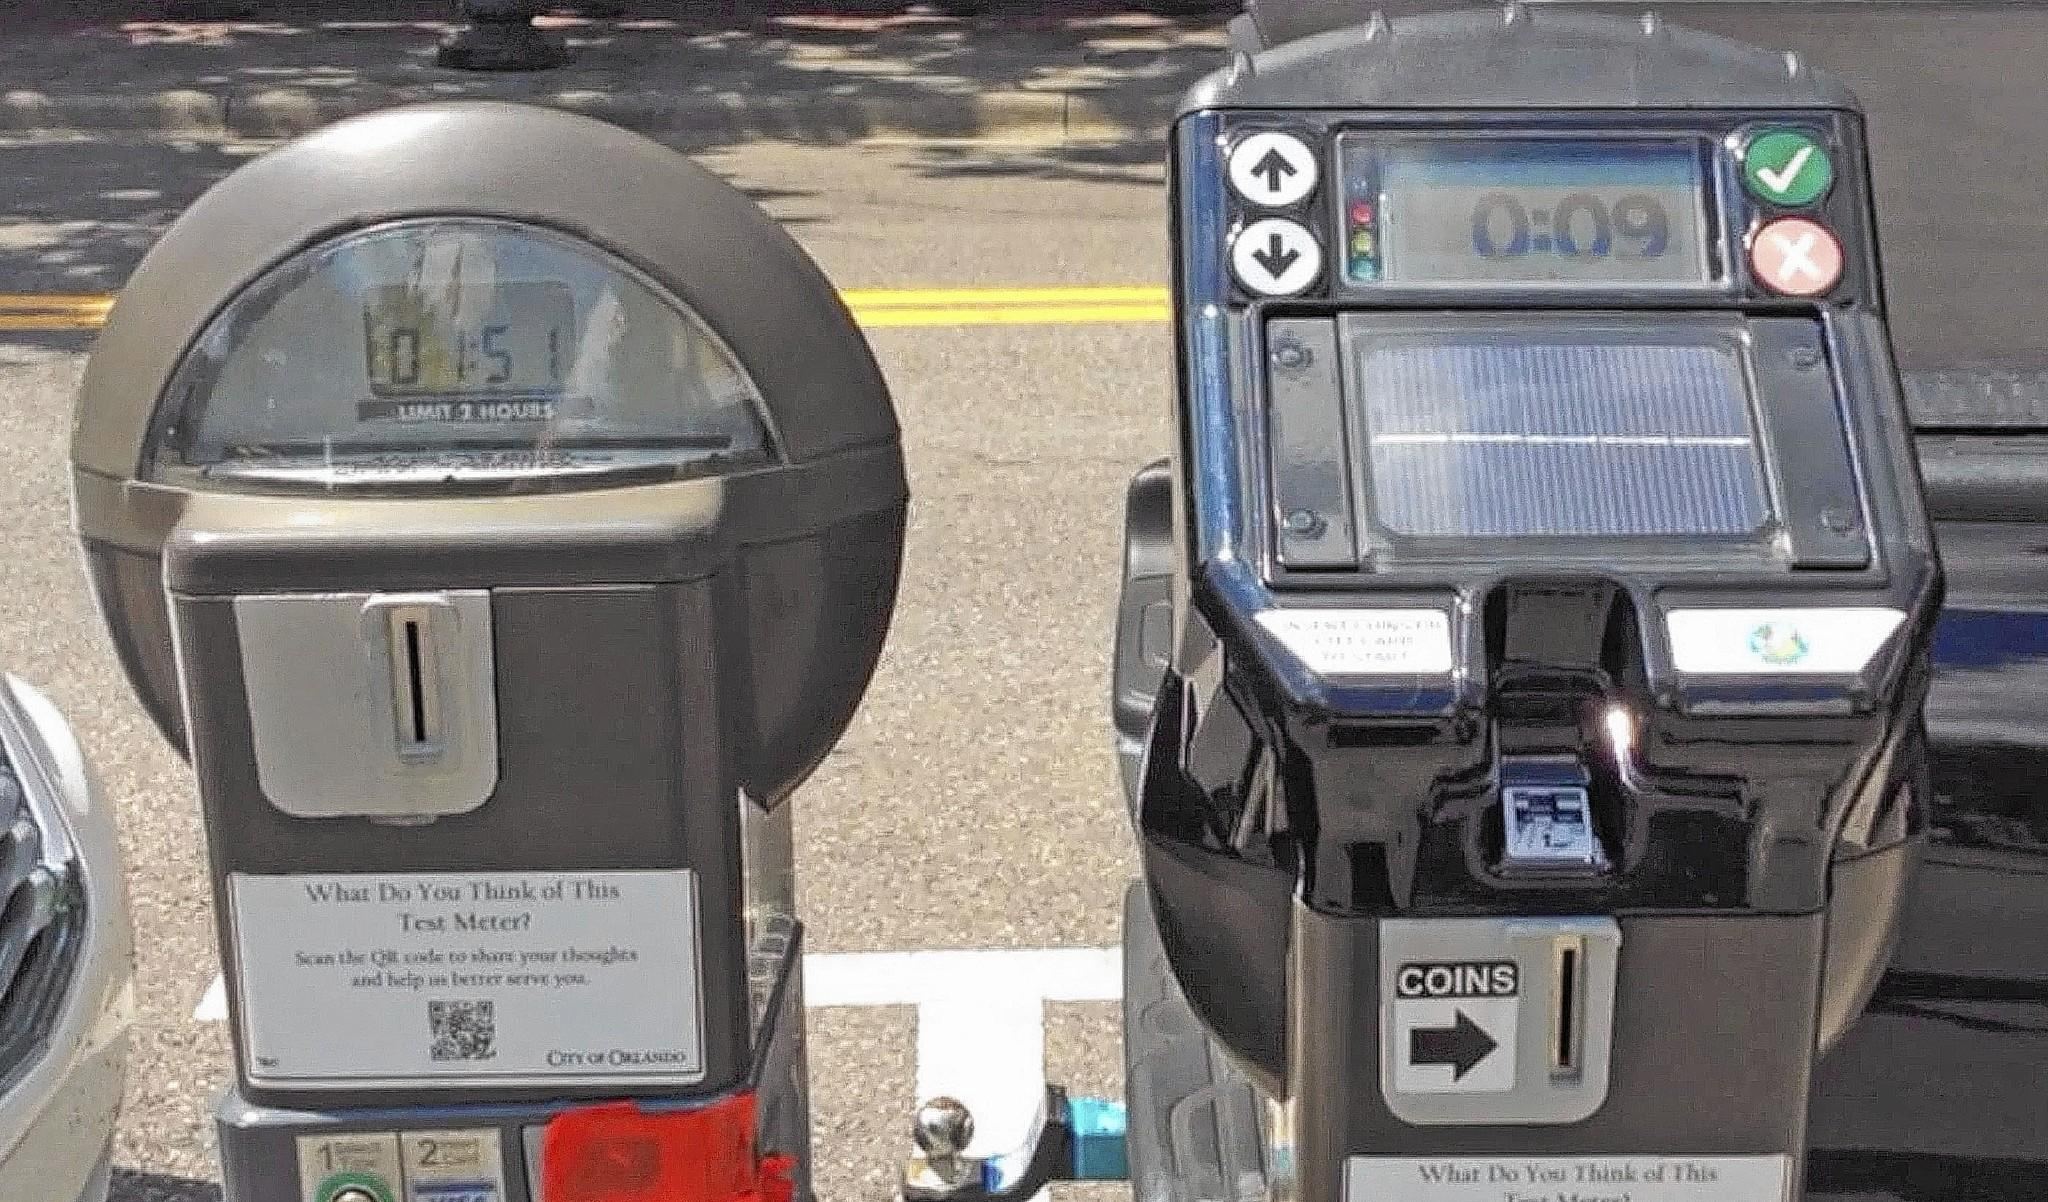 Orlando plans to replace downtown parking meters with